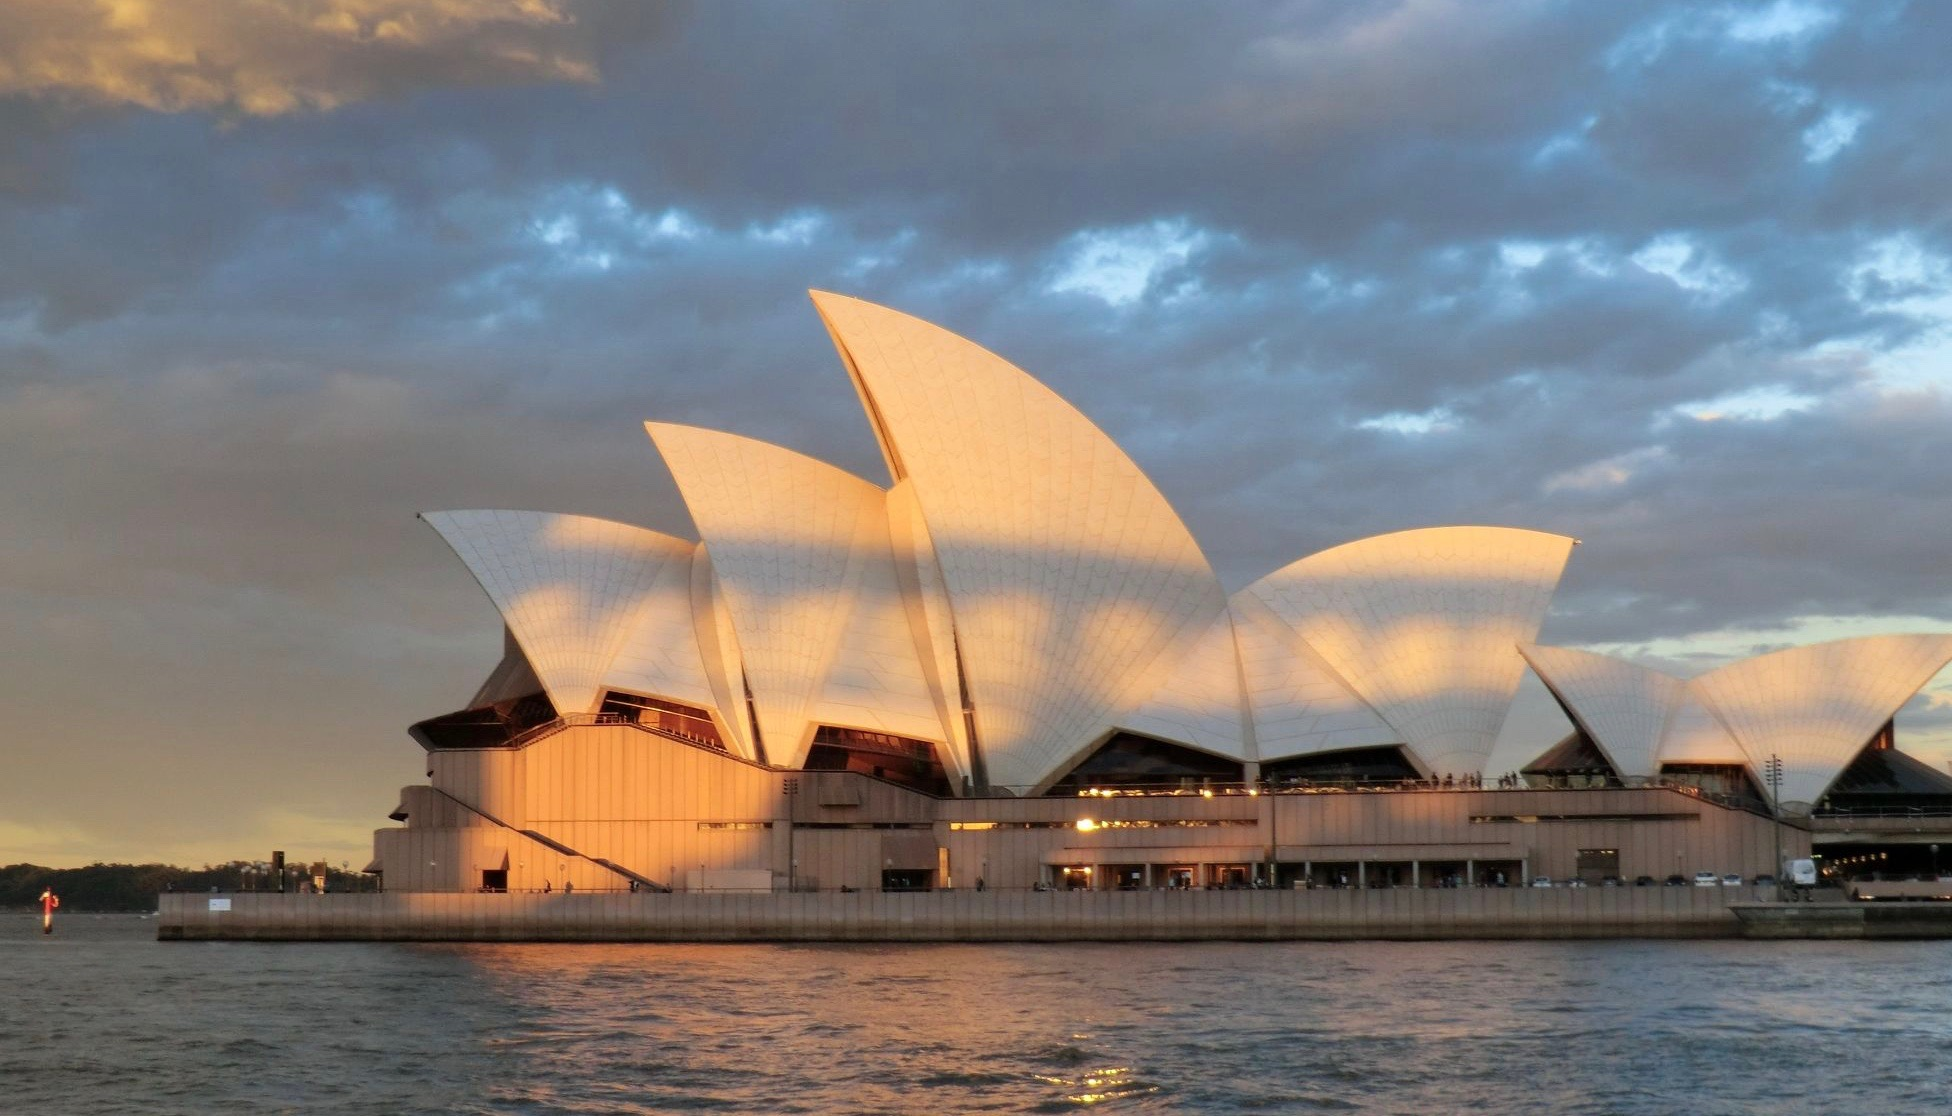 The iconic Opera House with the shadow of the harbor bridge: cool picture I think.